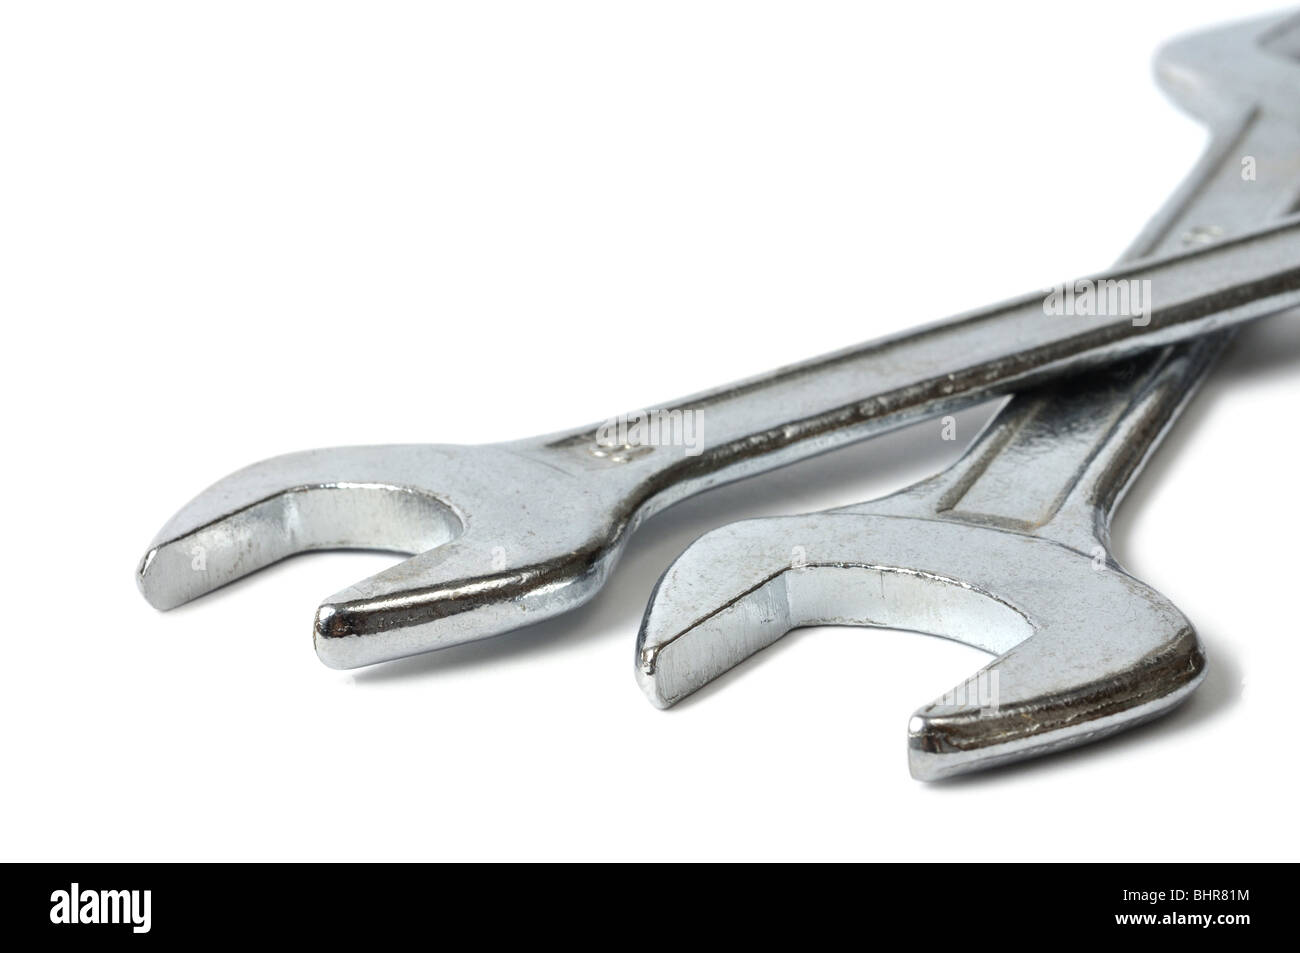 Wrenches - Stock Image